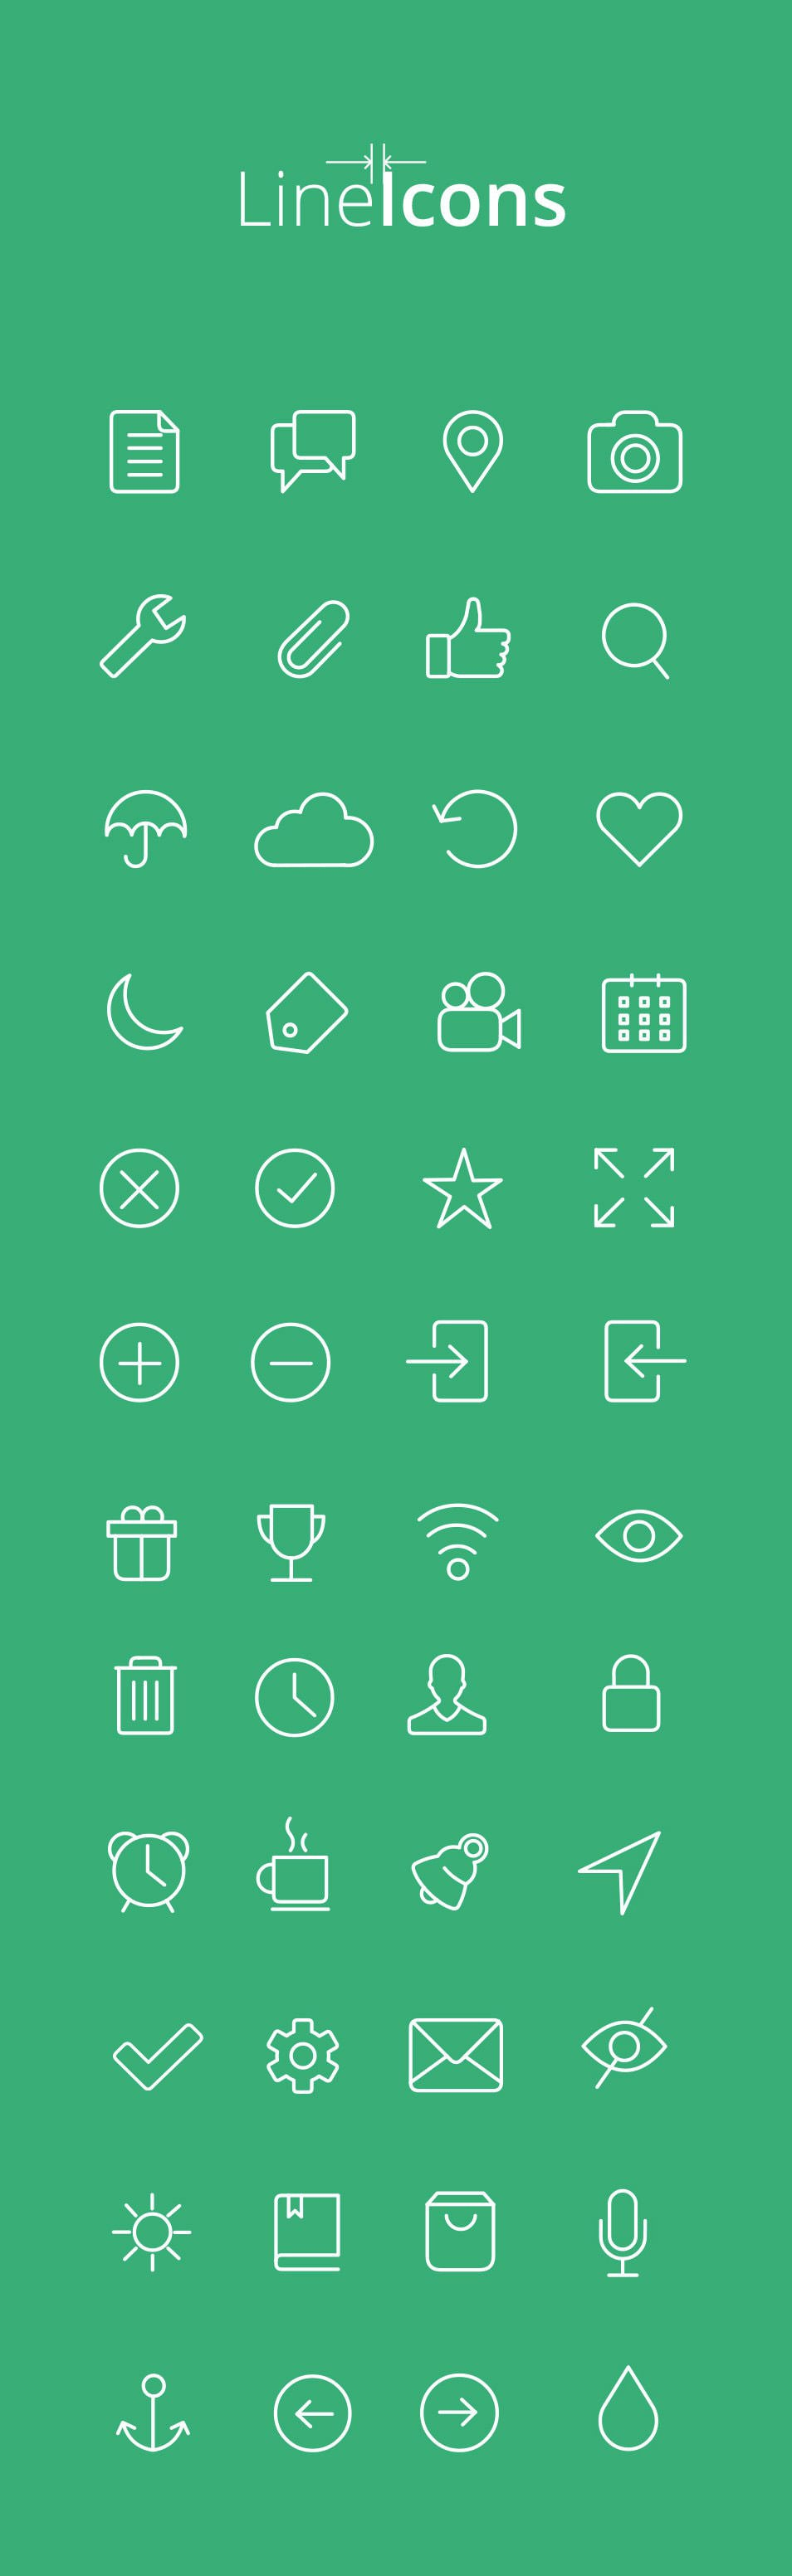 Free-Line-Icons-for-Web-and-UI-Designs